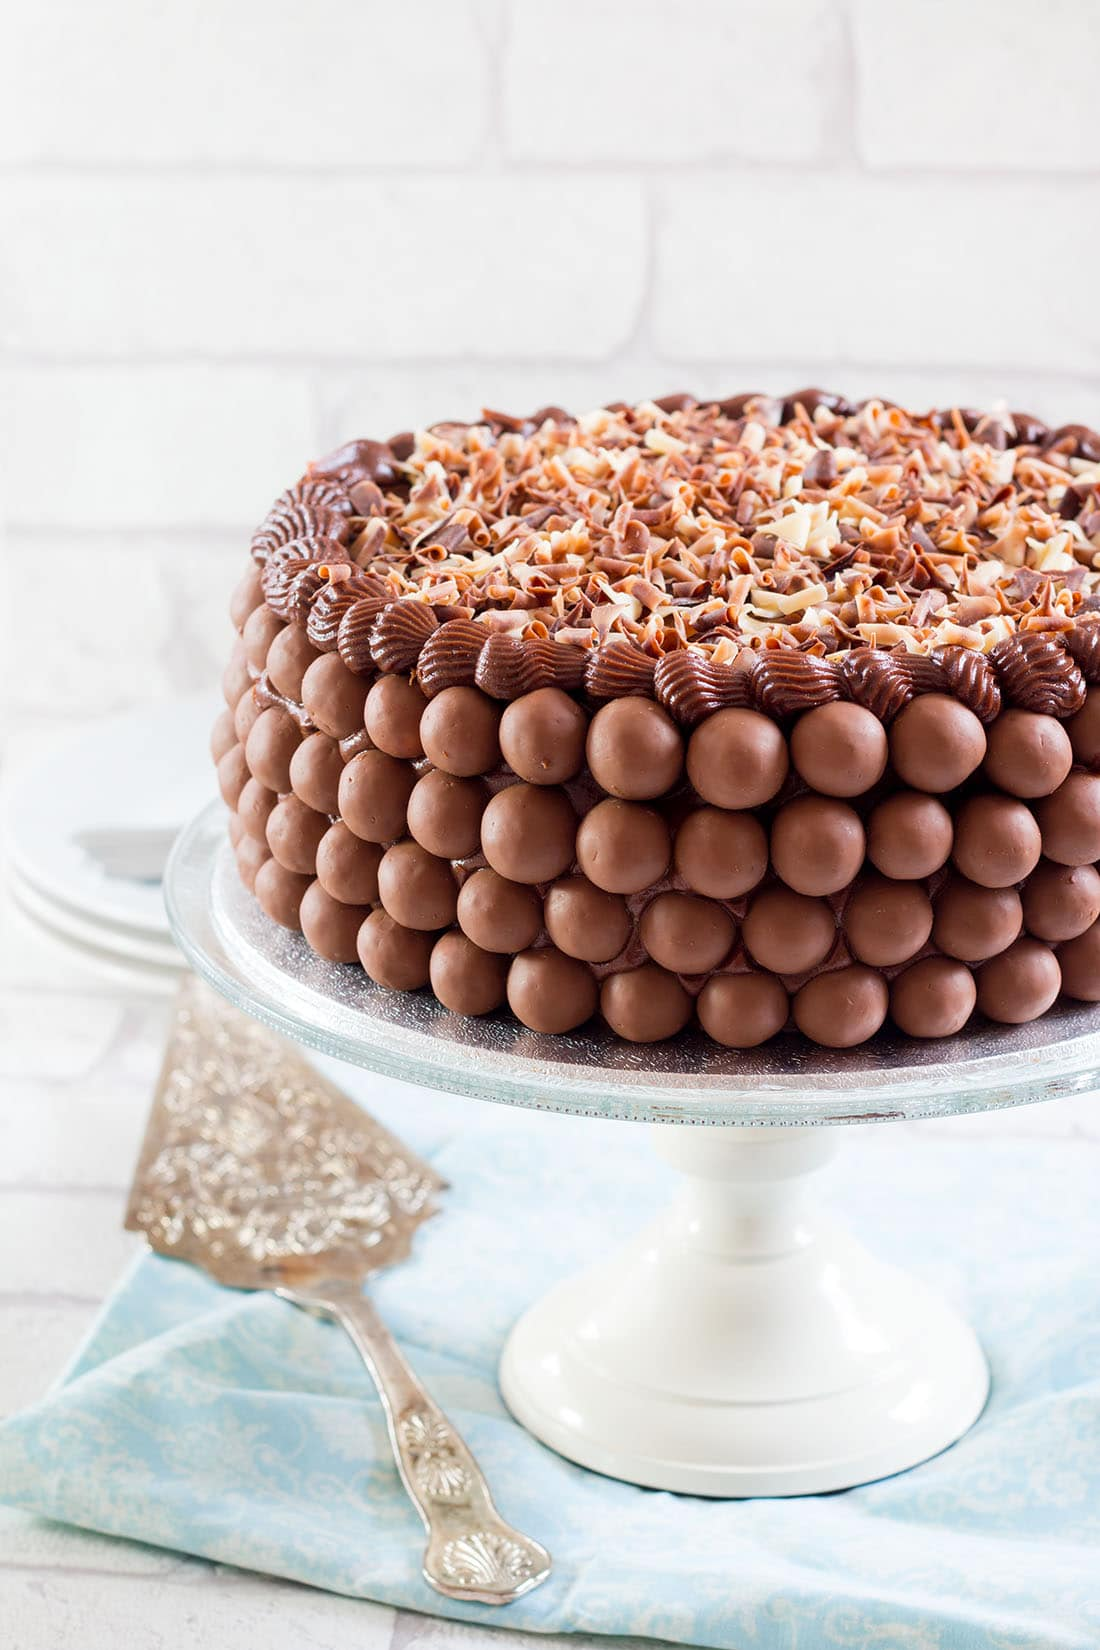 Chocolate Lovers Dream Cake - Erren's Kitchen - Indulge yourself with this amazing recipe. This heavenly moist, fudgy chocolate cake is filled with dark chocolate pudding, covered with chocolate butter cream, a layer of malted milk chocolate balls and topped with a layer of chocolate curls. Its any chocolate lover's dream cake.